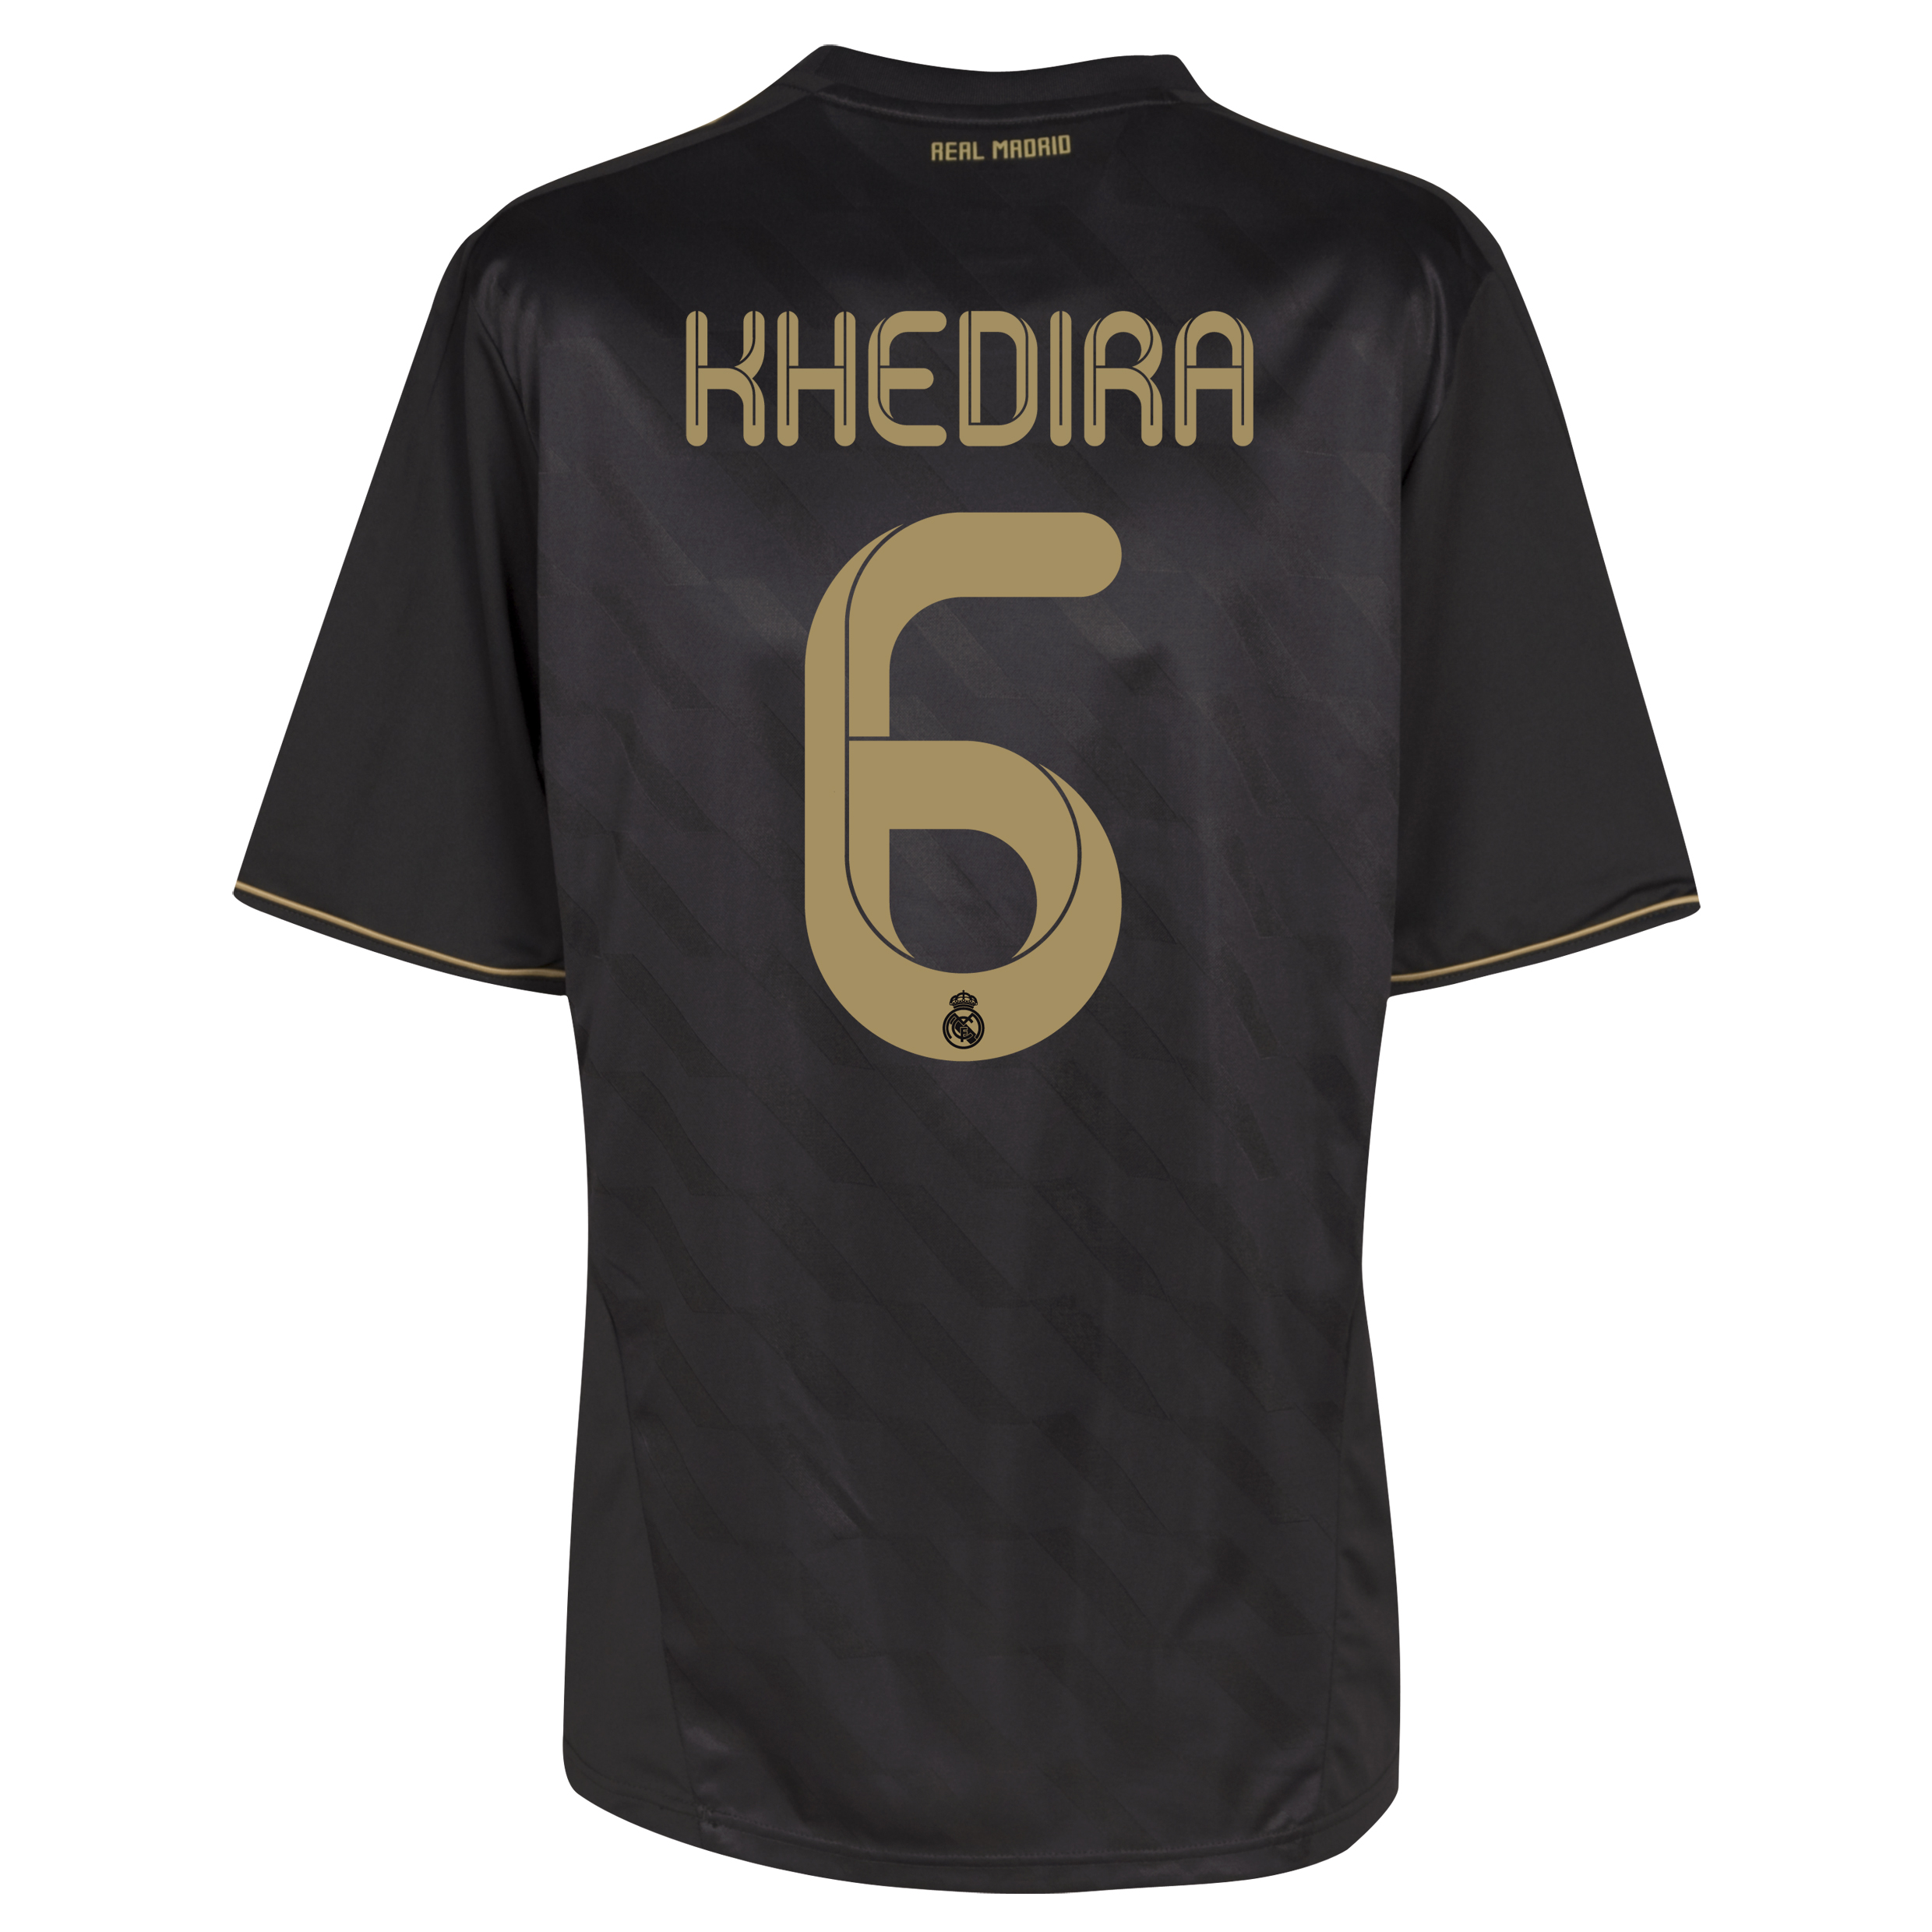 Real Madrid Away Shirt 2011/12 with Khedira 6 printing